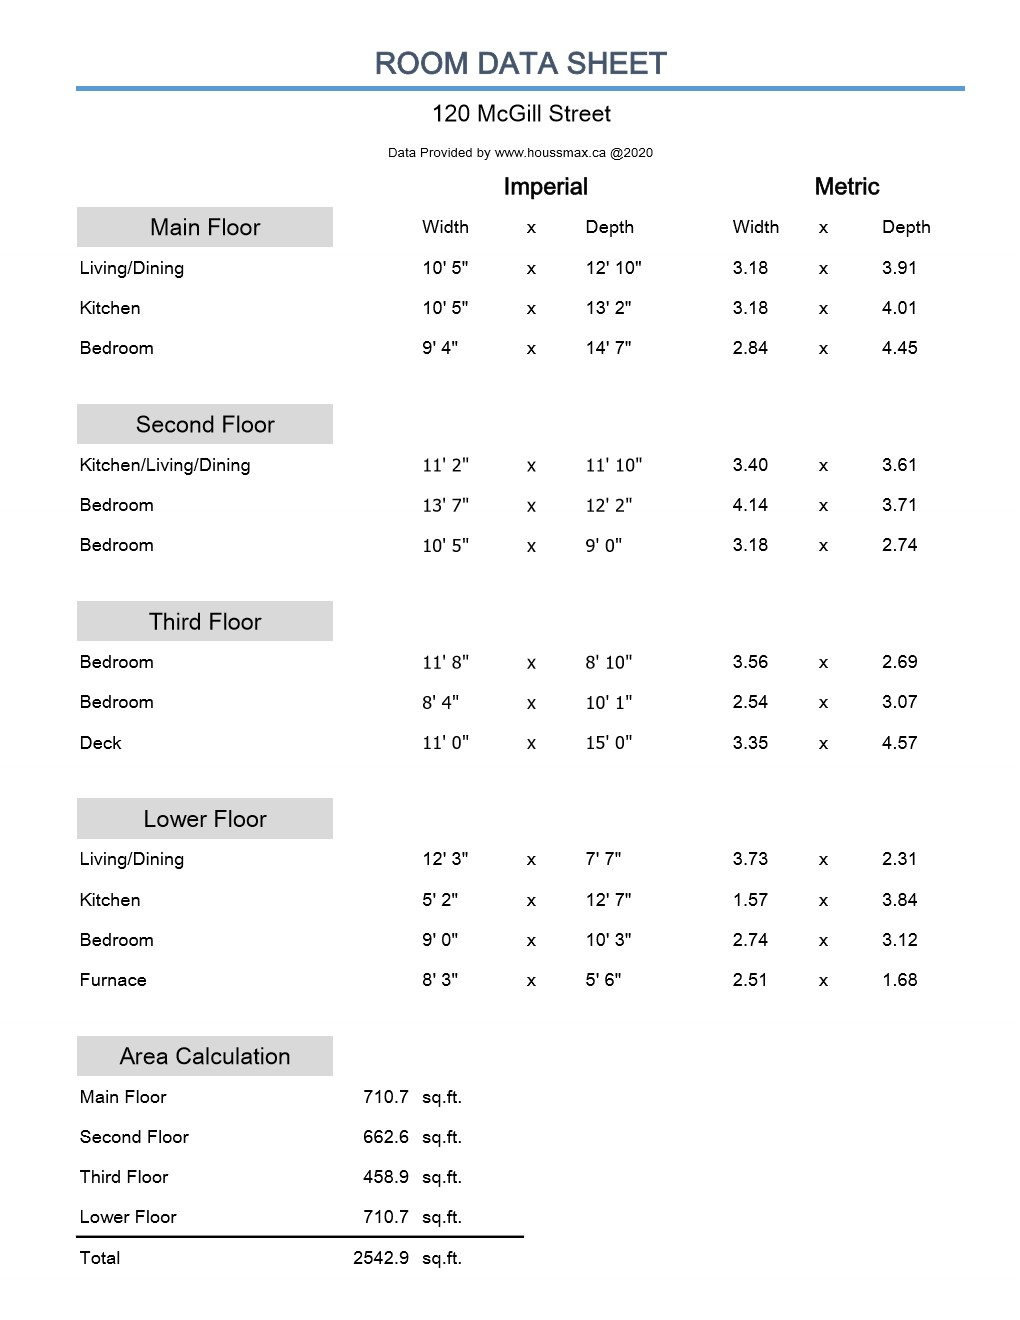 Measurements of various rooms in 120 McGill St.